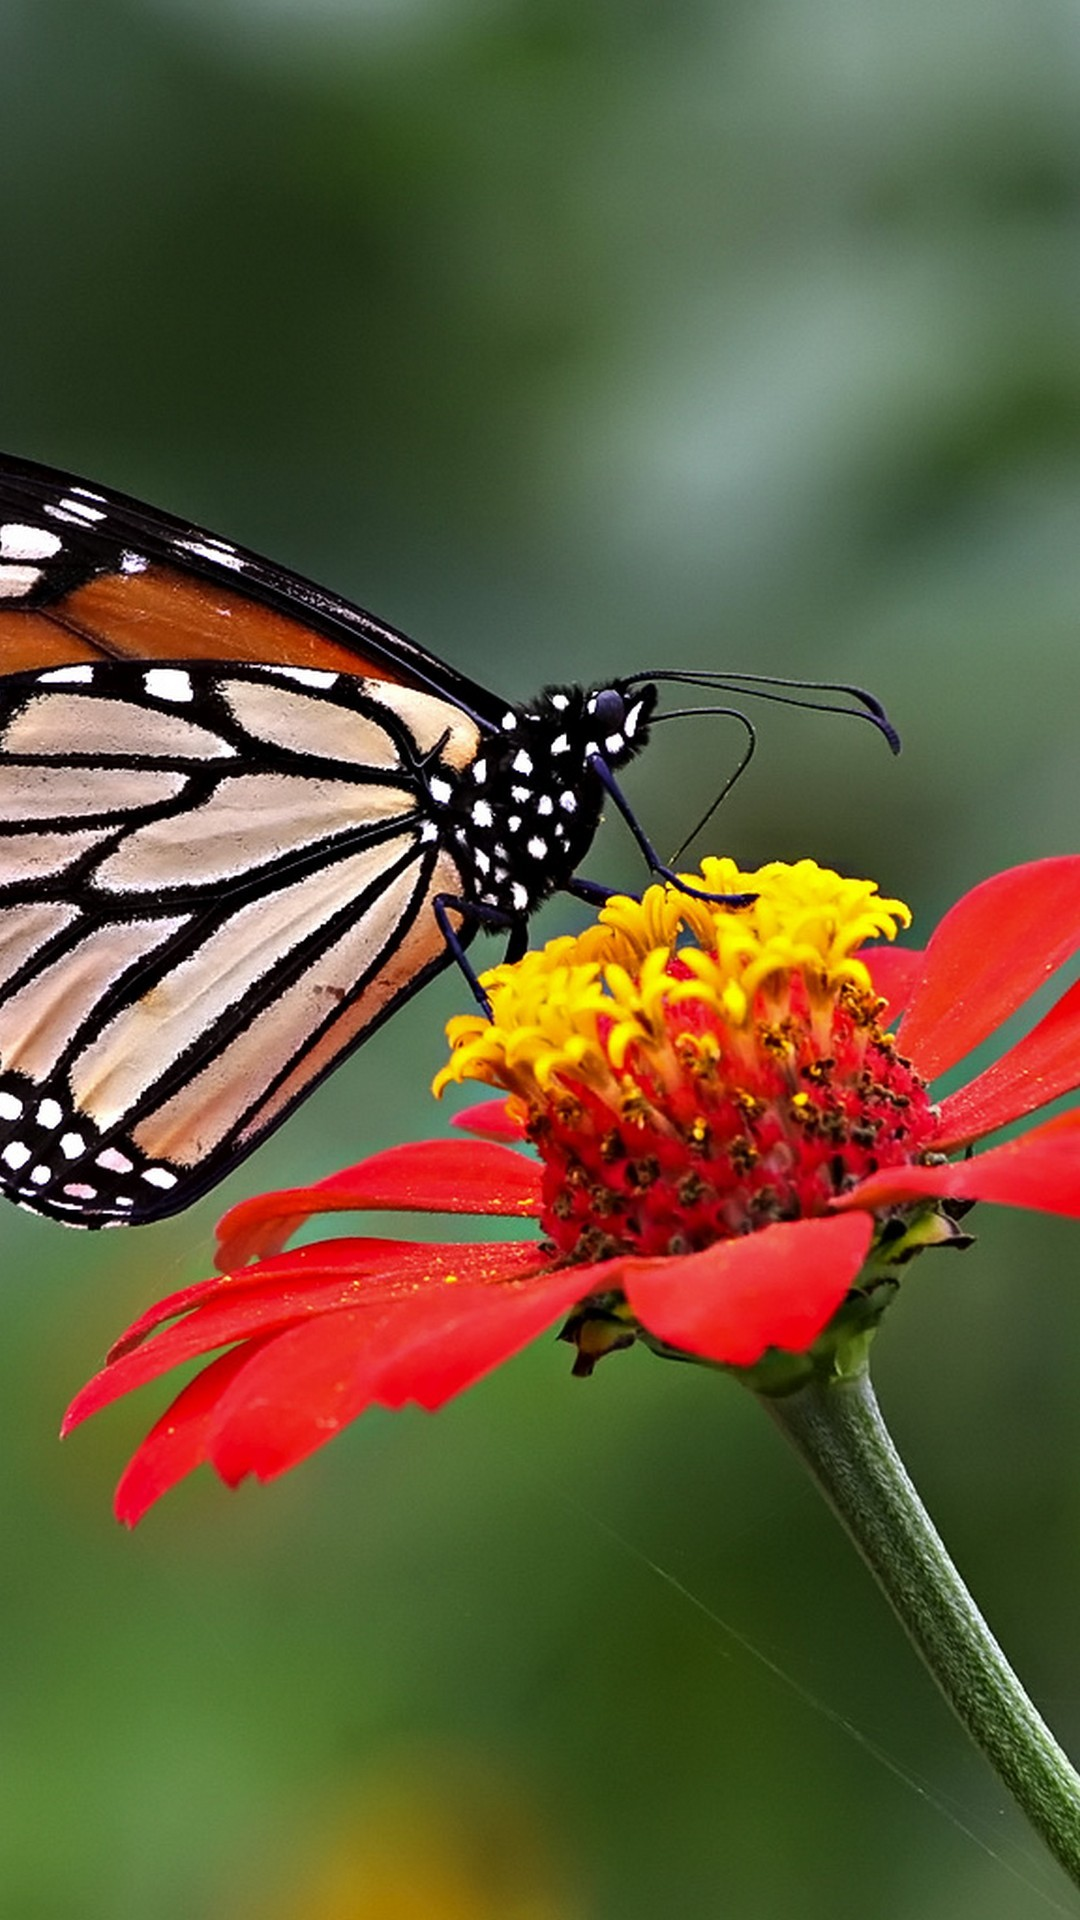 Wallpaper Android Butterfly Pictures